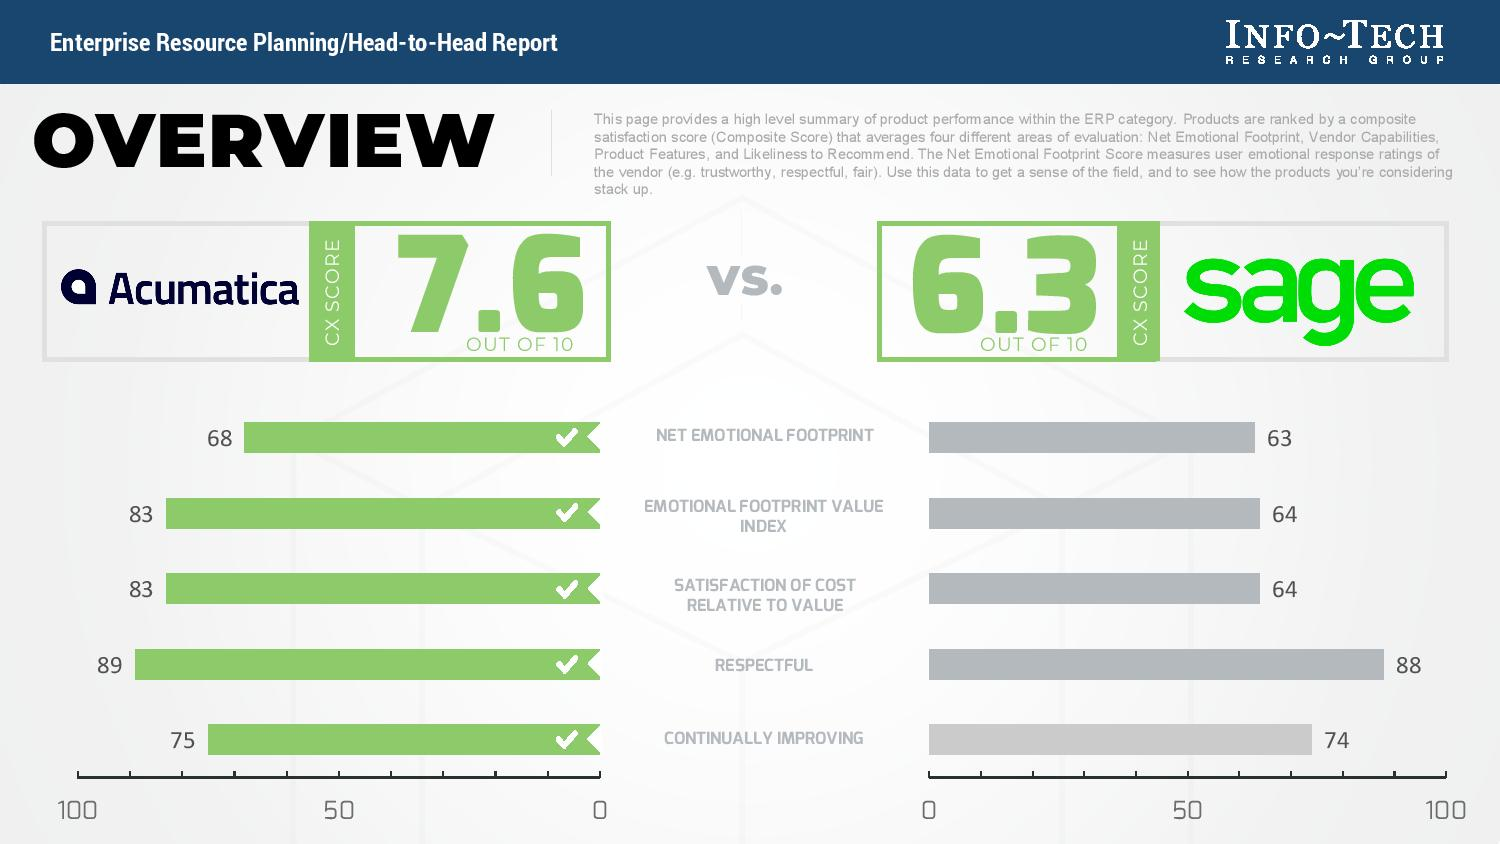 ERP Software Reviews: Acumatica vs. Sage, page 1